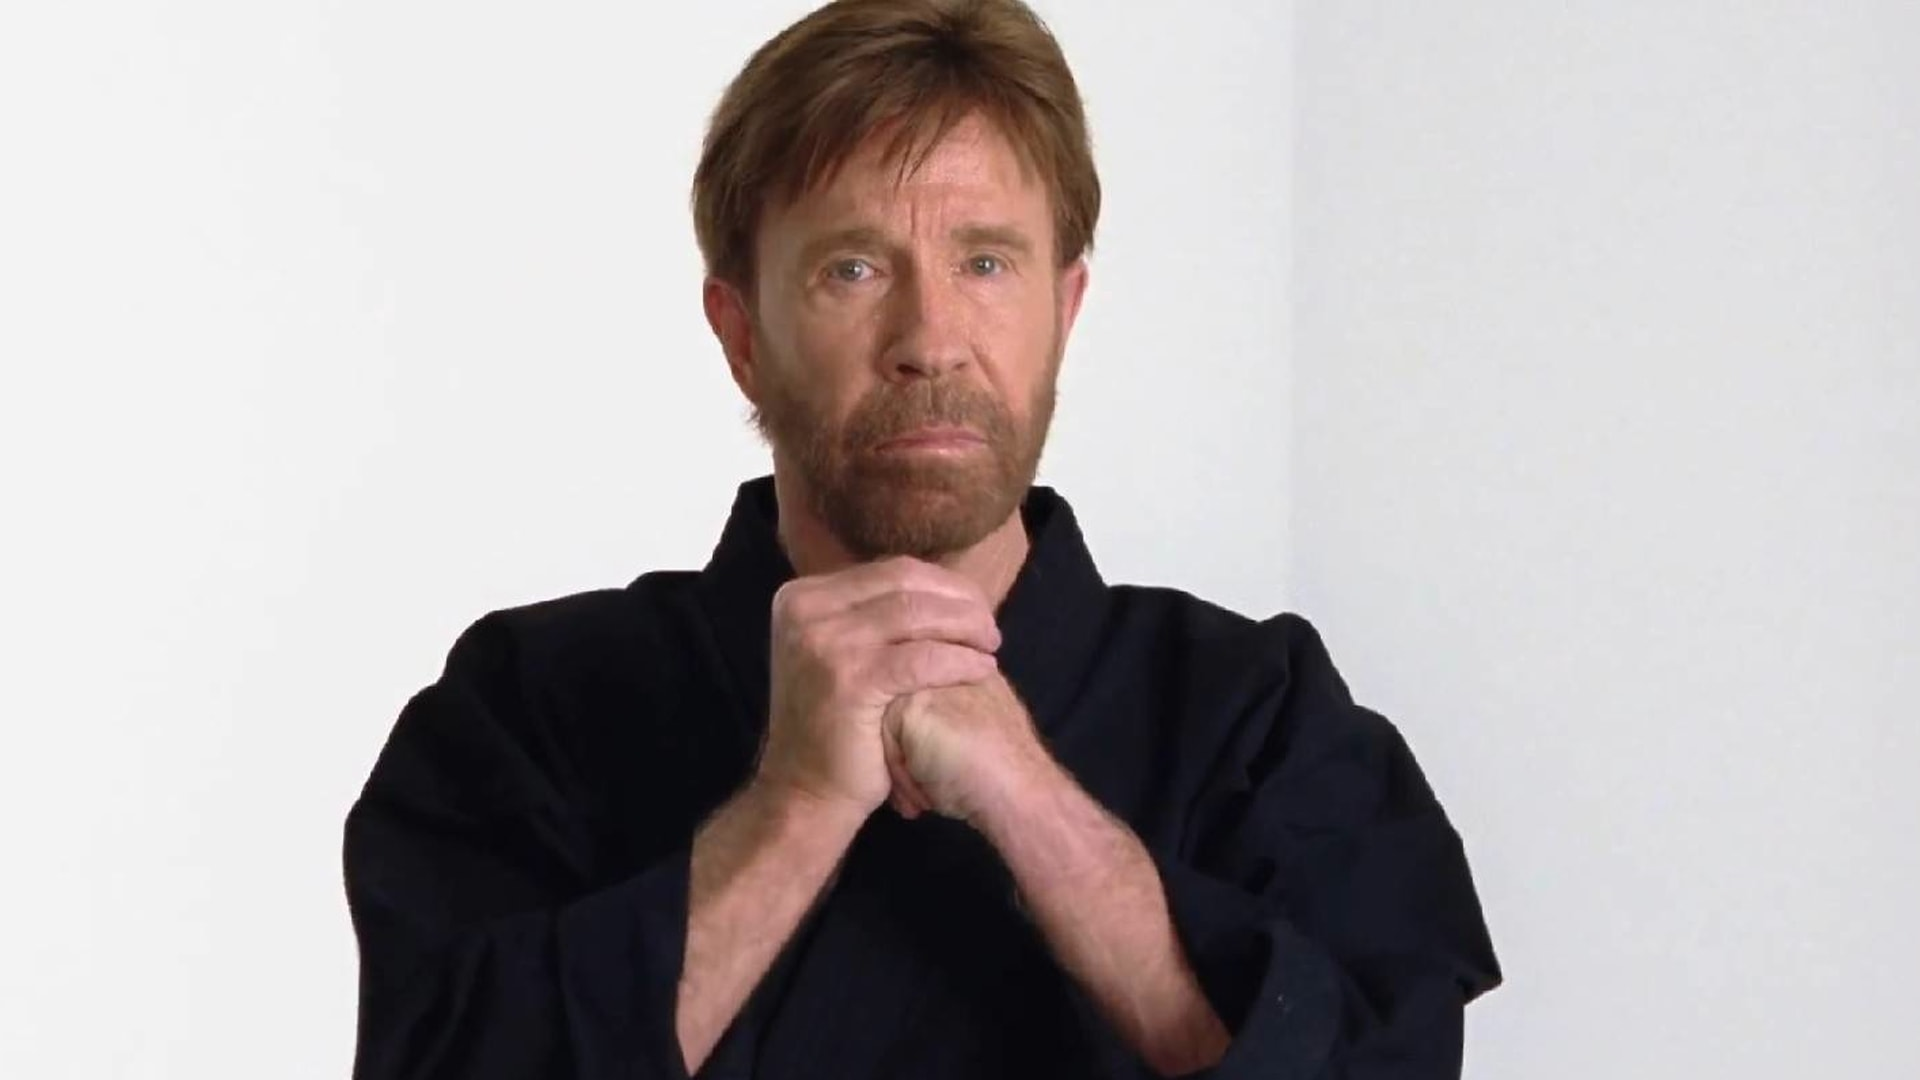 Chuck Norris widescreen wallpapers